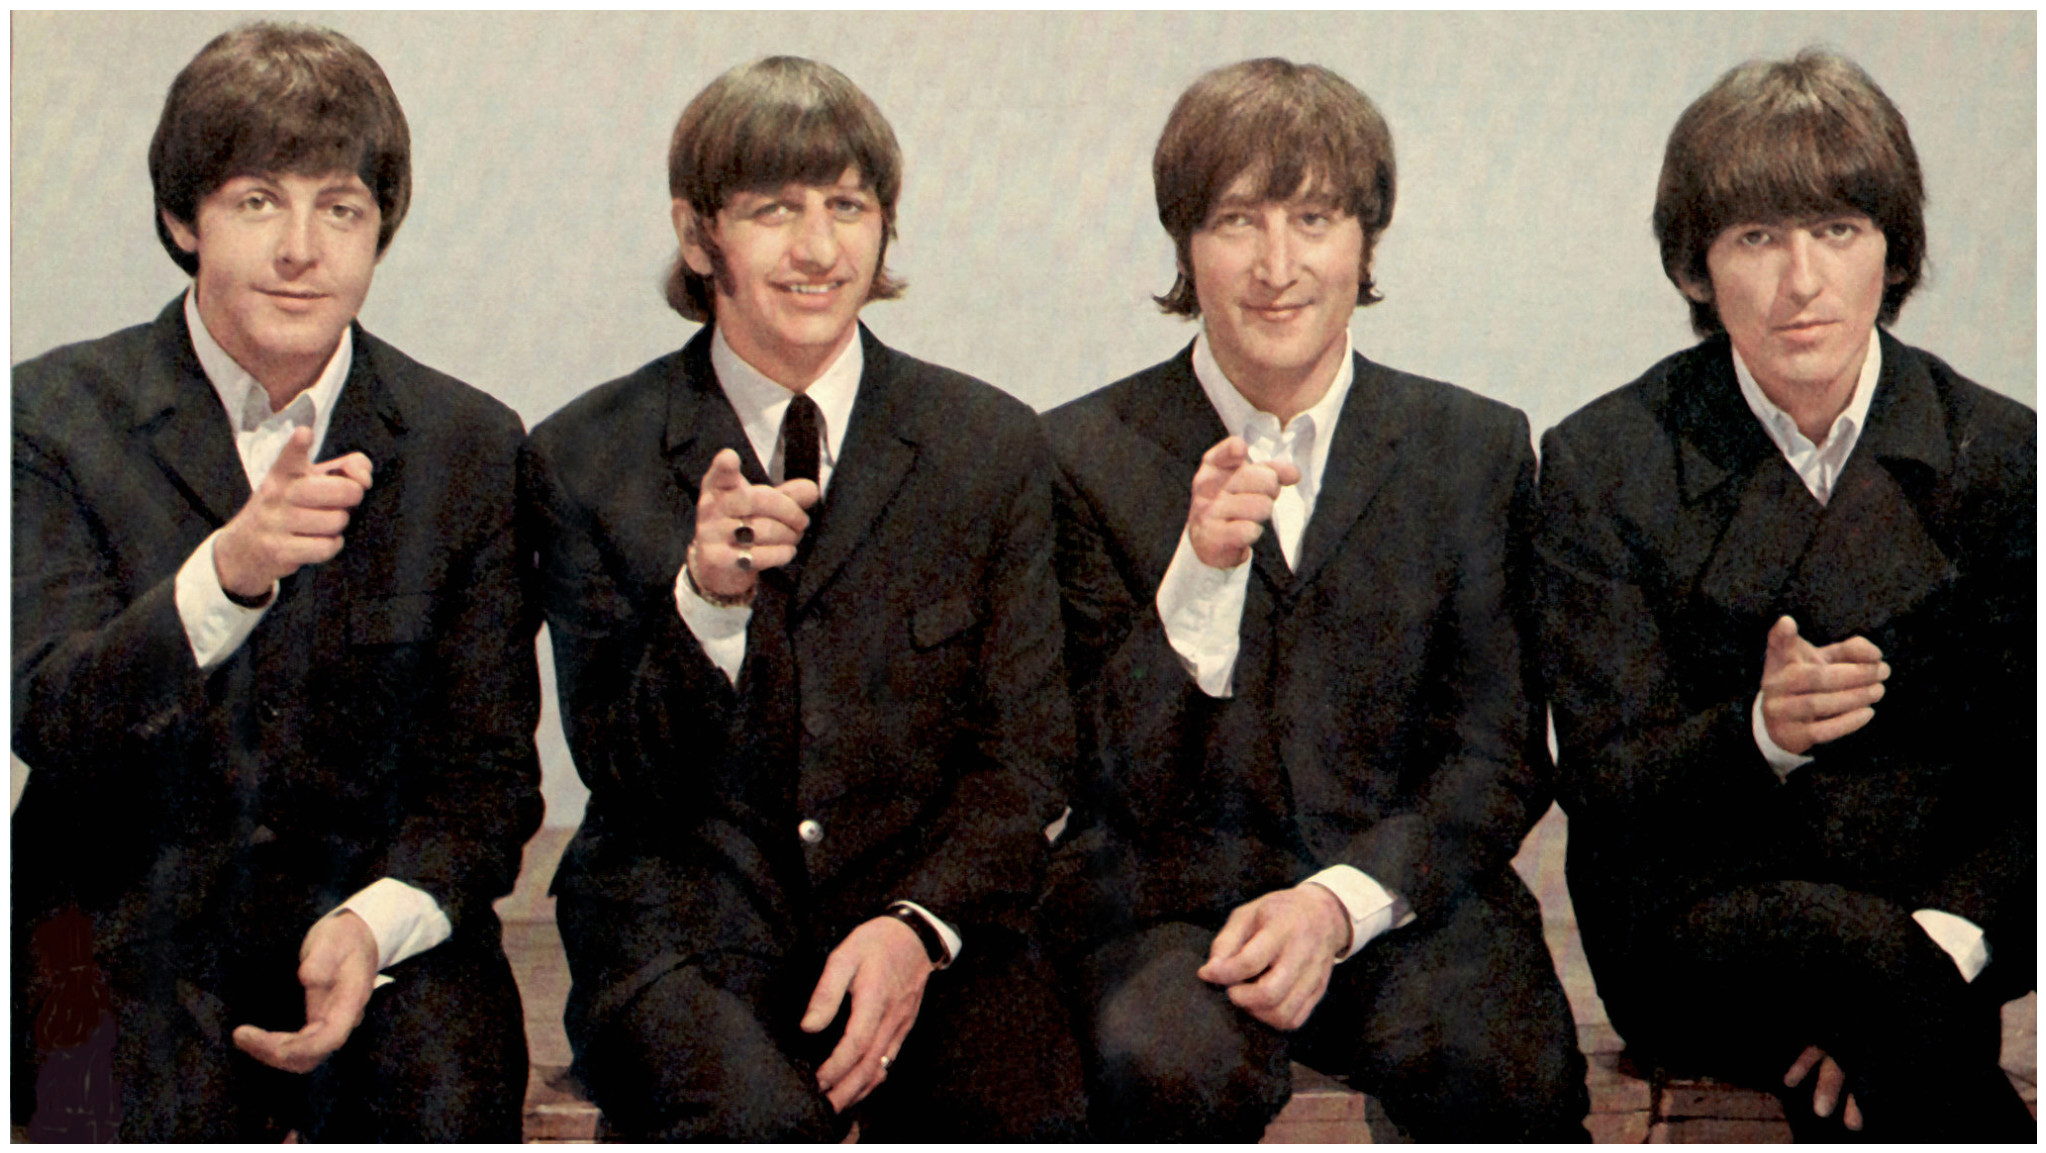 The Beatles win an Oscar